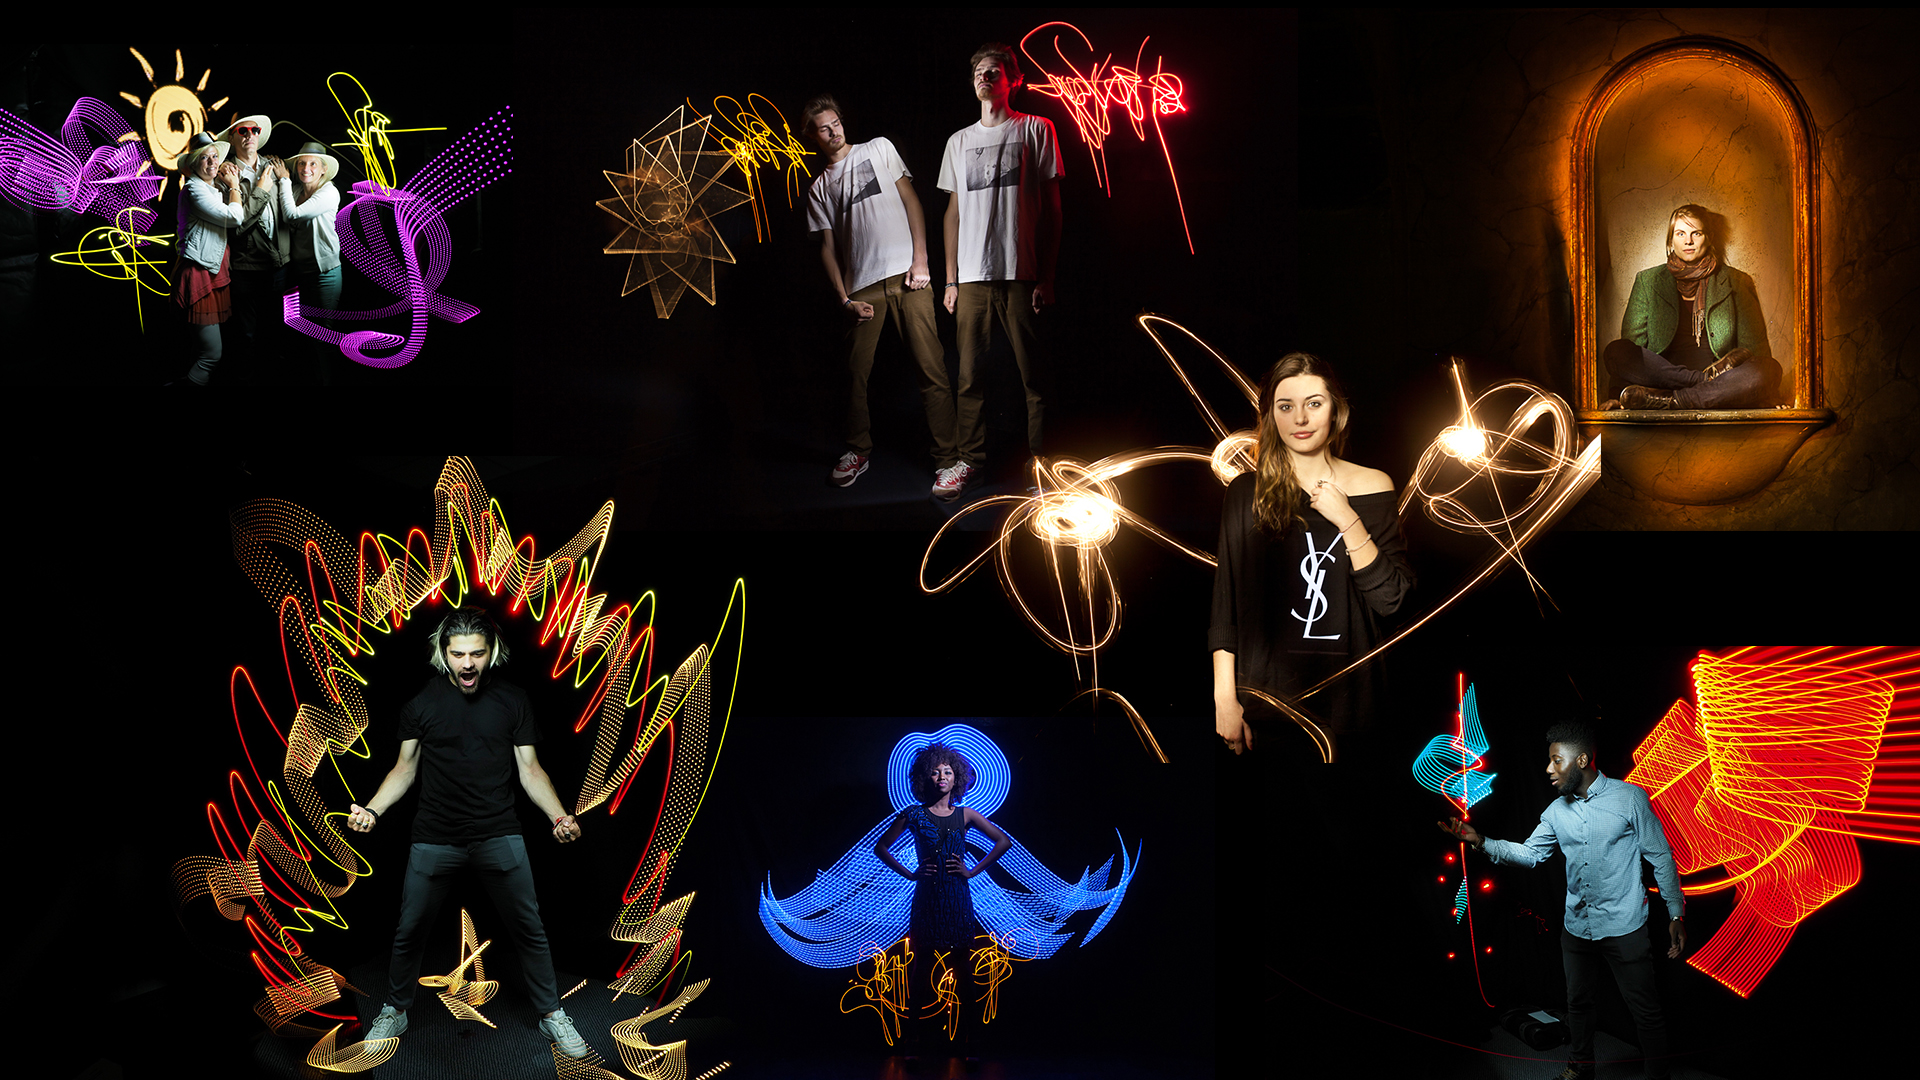 Animation portraits lightpainting